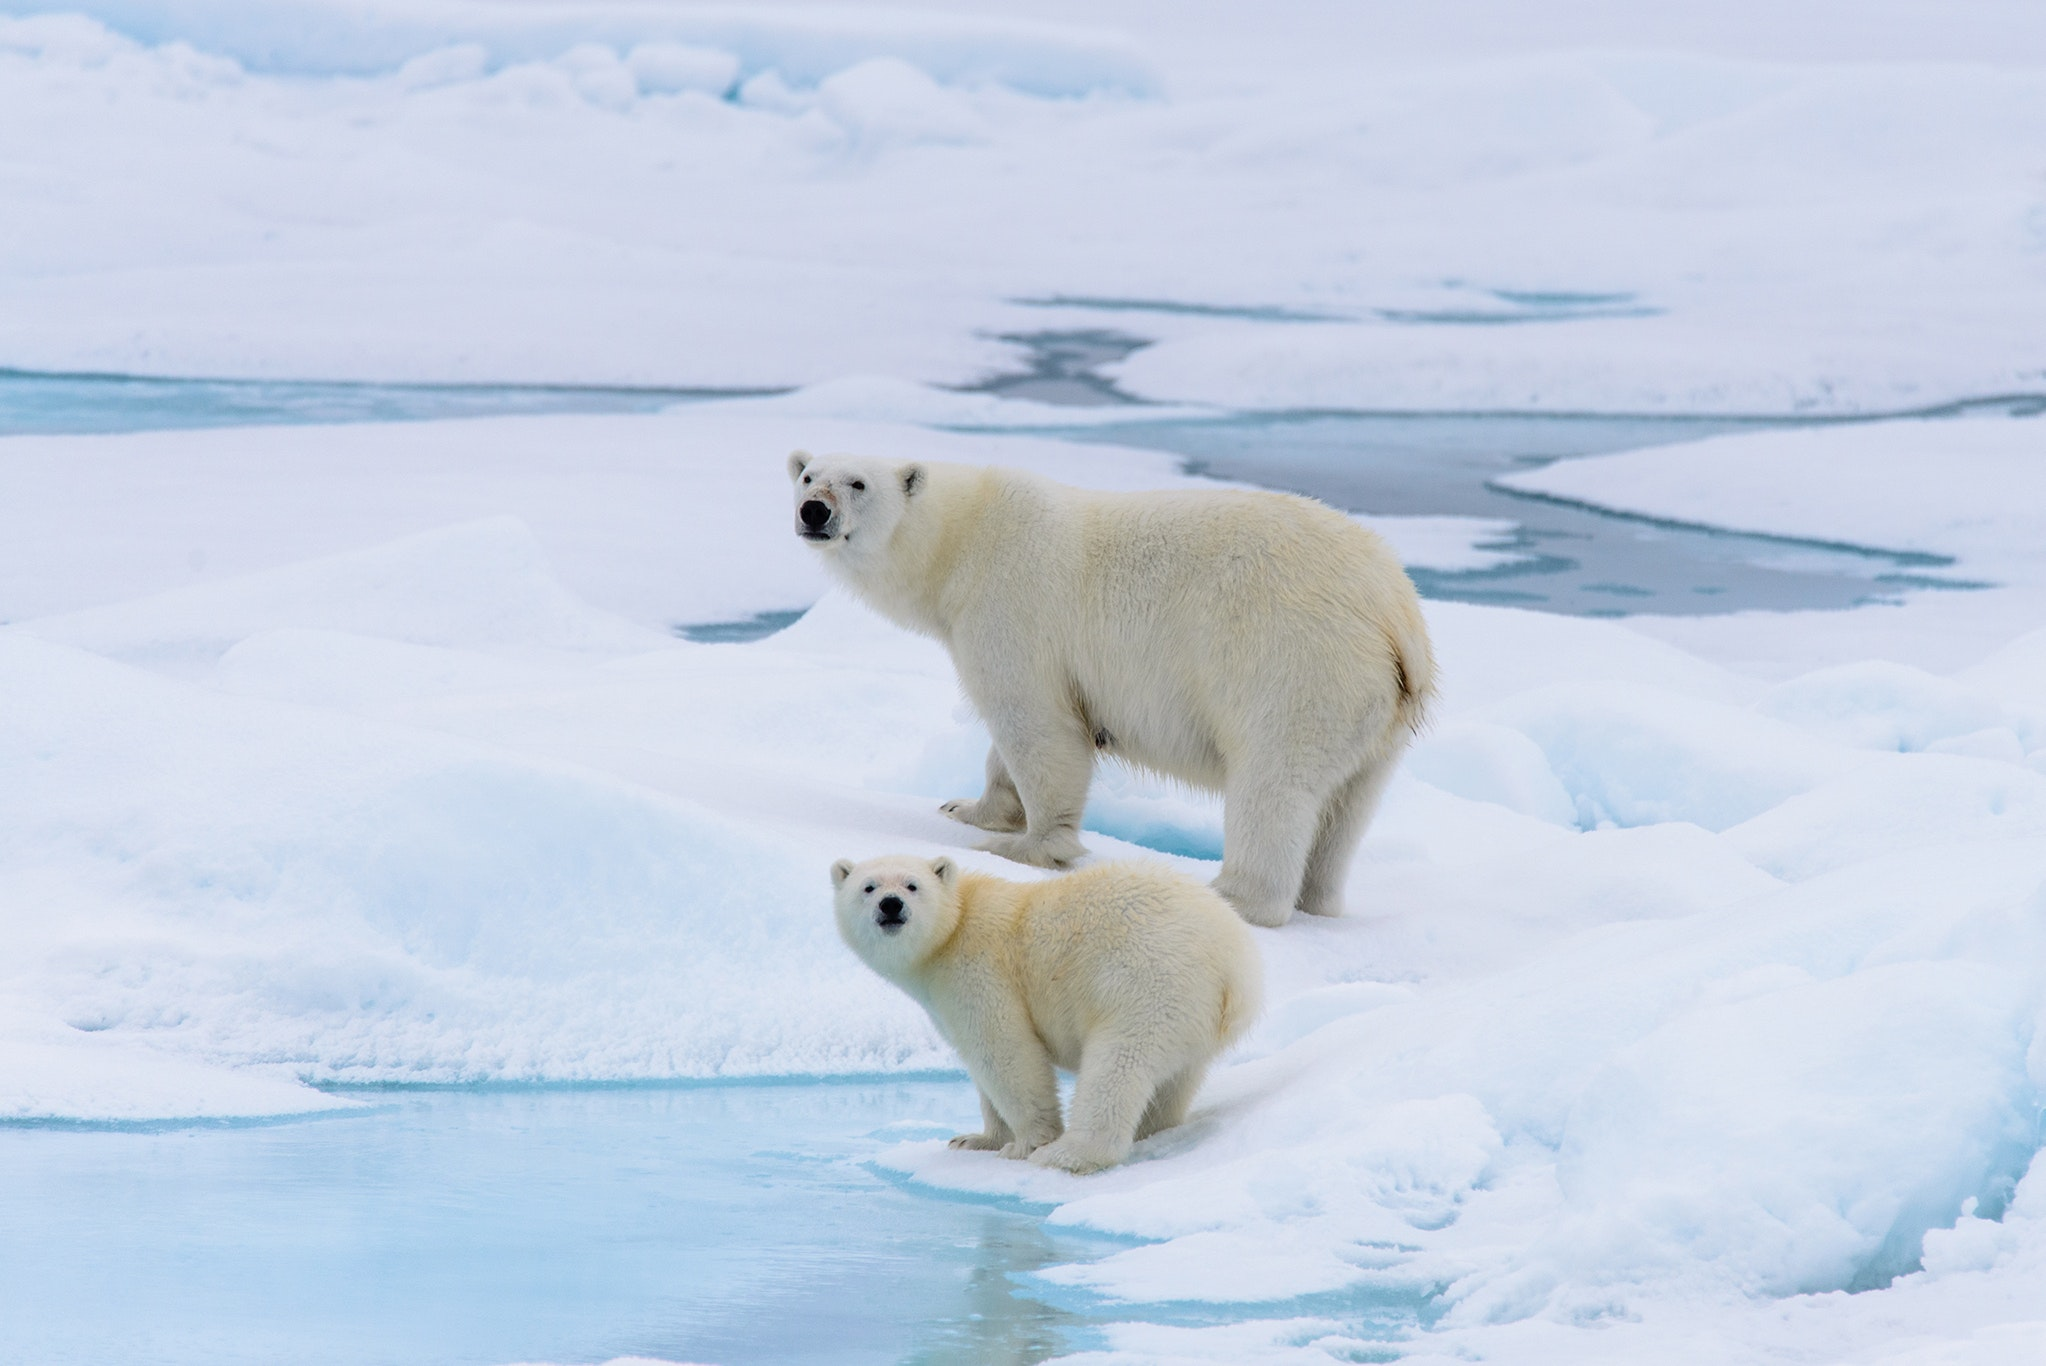 Book a trip to the Arctic for a chance to see polar bears.